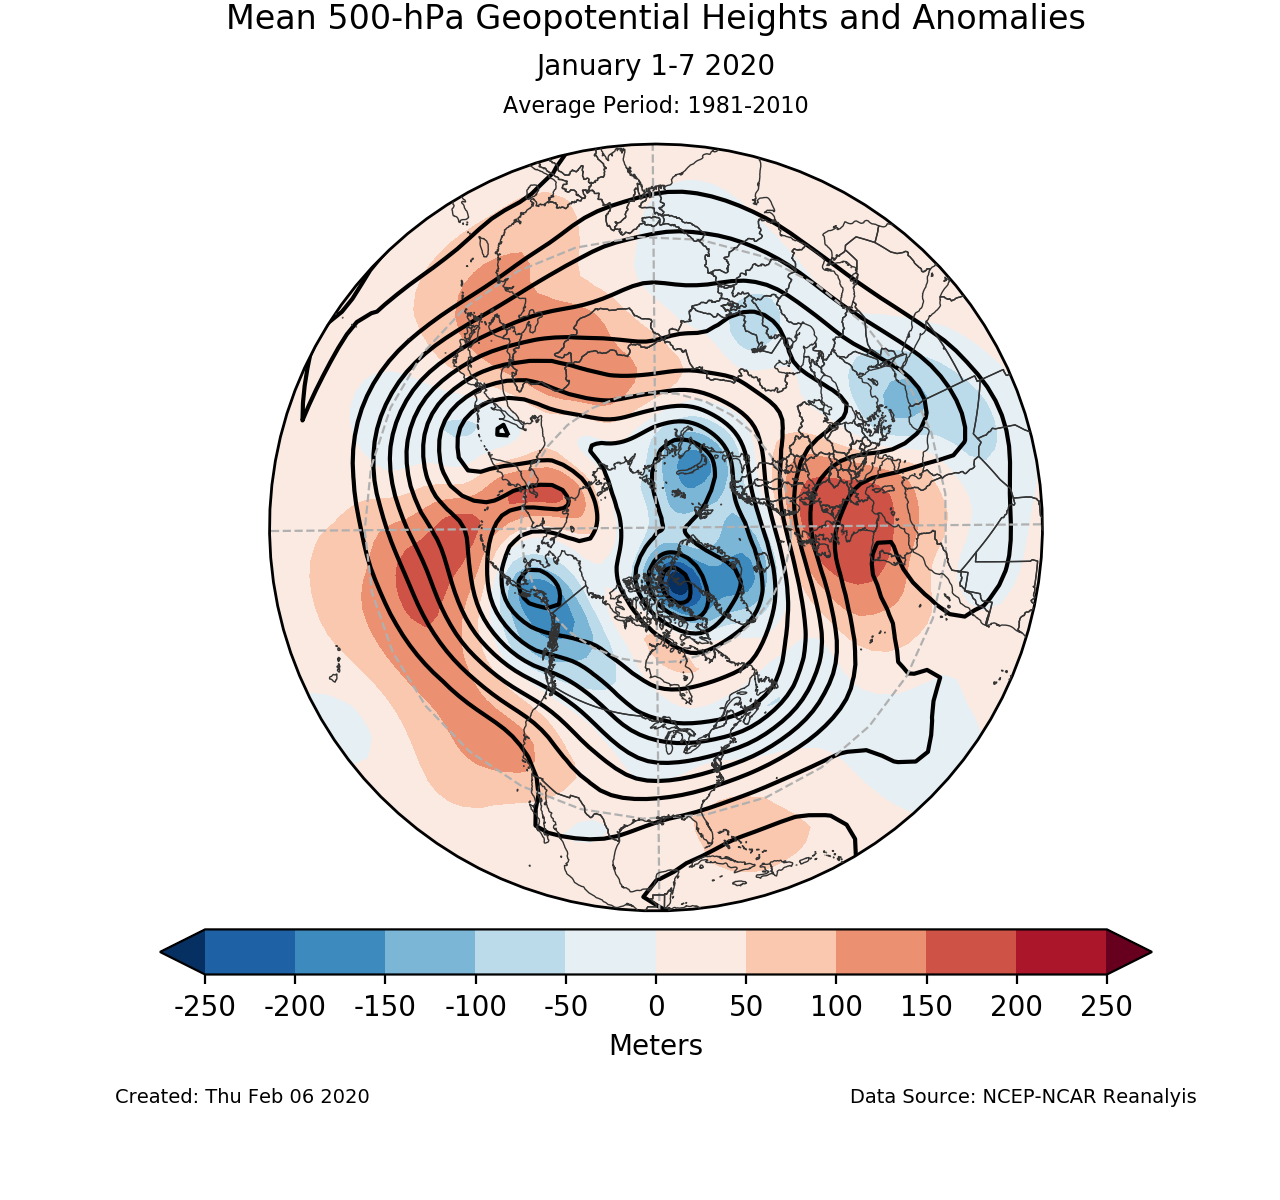 500-mb mean circulation for the Northern Hemisphere for January 1-7 2020